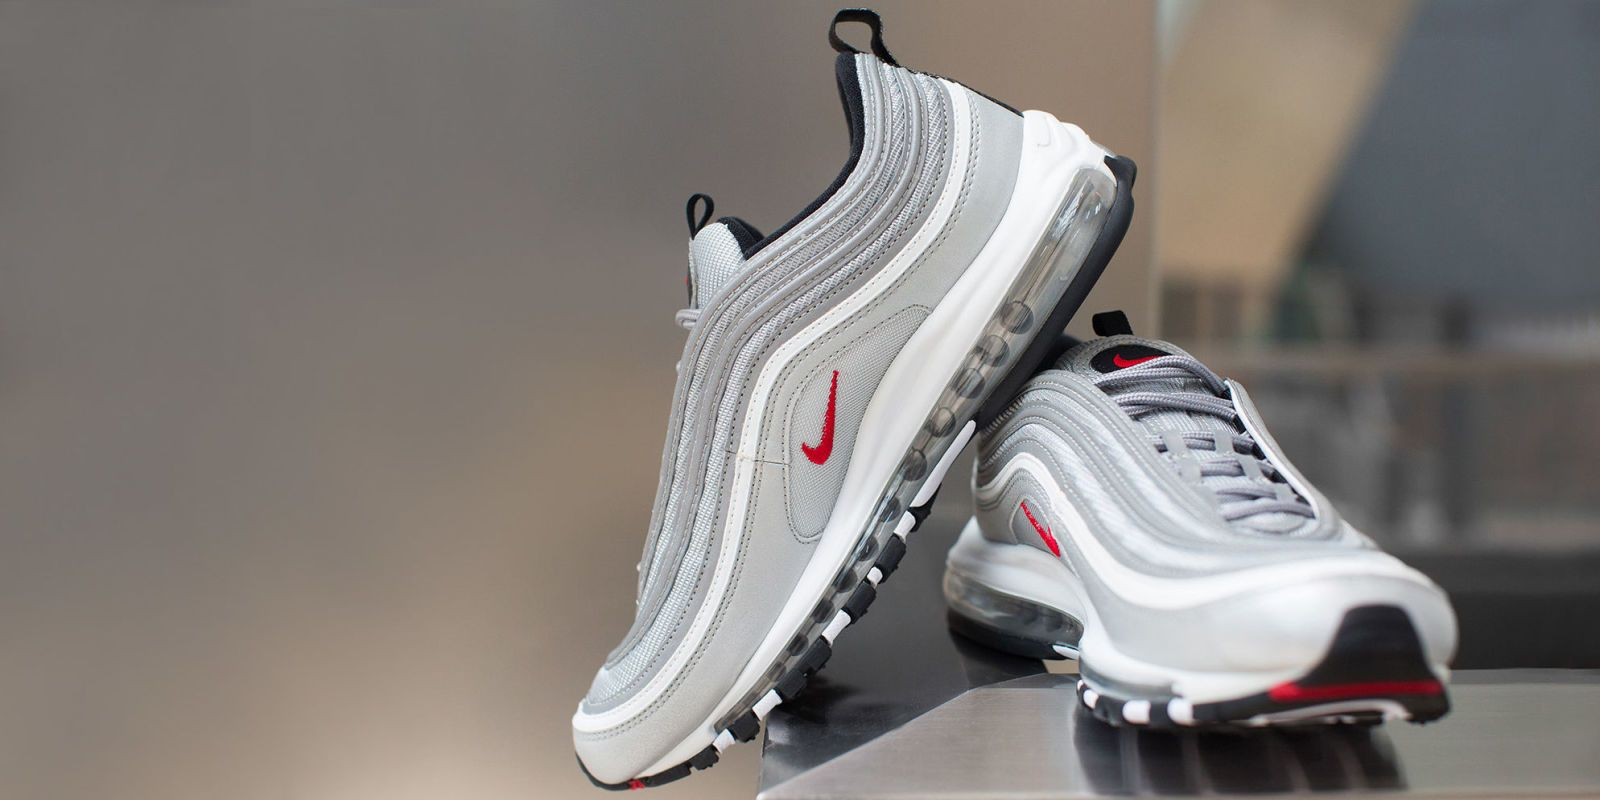 Cheap Nike Air Max 97 Premium 'Thunder Blue & Dark Obsidian'